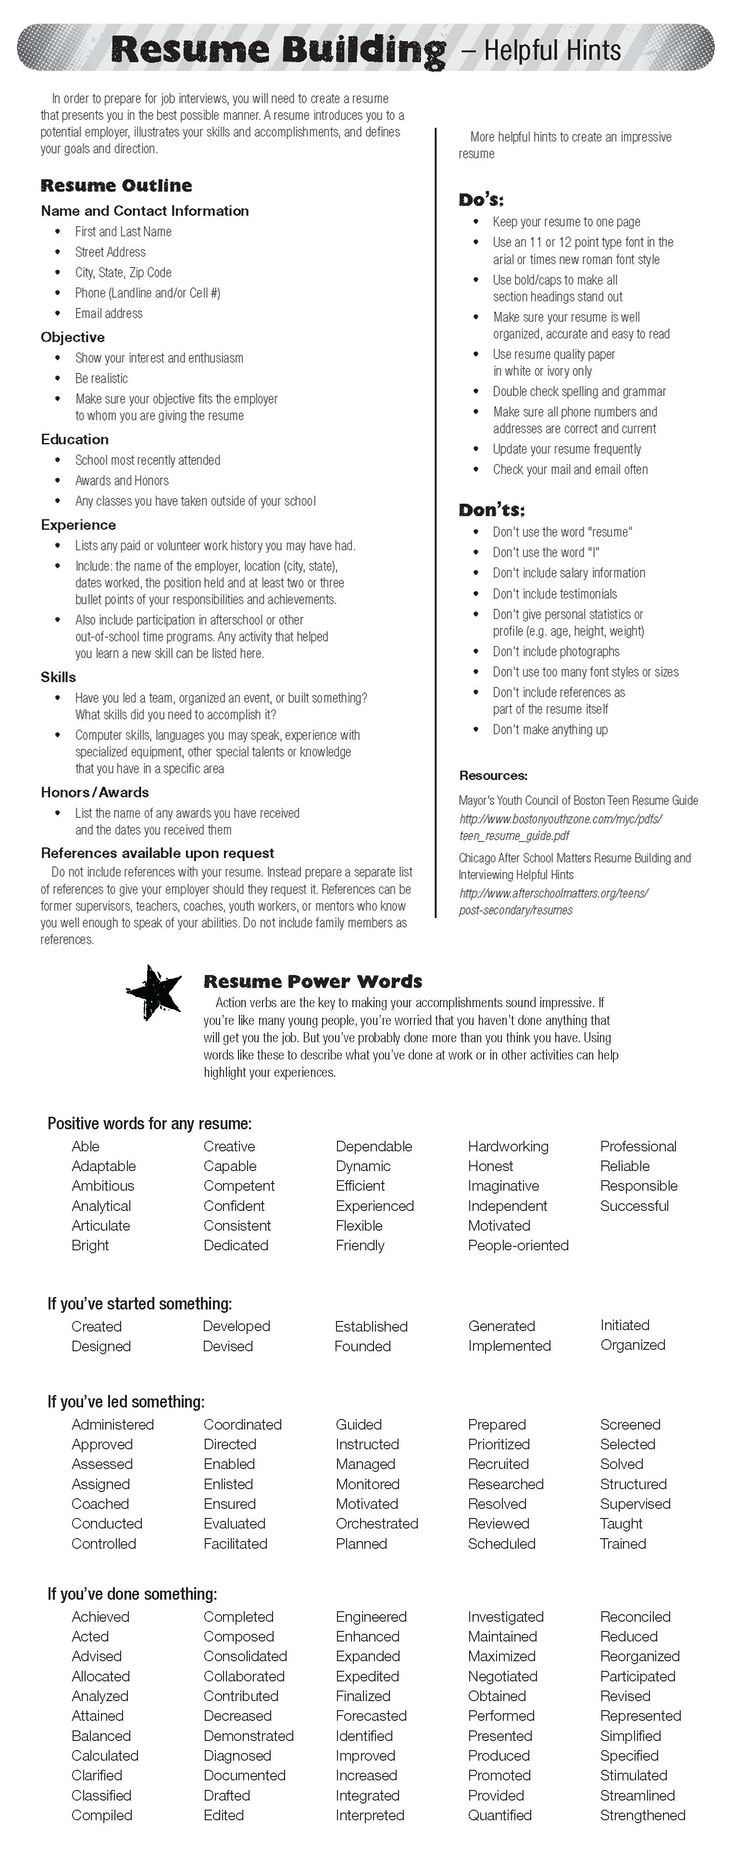 Opposenewapstandardsus  Seductive  Ideas About Resume On Pinterest  Cv Format Resume Cv And  With Excellent  Ideas About Resume On Pinterest  Cv Format Resume Cv And Resume Templates With Cool How To Write Cover Letter For Resume Also Copy Of Resume In Addition Format Of Resume And Sample Business Analyst Resume As Well As Supply Chain Resume Additionally What Is The Difference Between A Cv And A Resume From Pinterestcom With Opposenewapstandardsus  Excellent  Ideas About Resume On Pinterest  Cv Format Resume Cv And  With Cool  Ideas About Resume On Pinterest  Cv Format Resume Cv And Resume Templates And Seductive How To Write Cover Letter For Resume Also Copy Of Resume In Addition Format Of Resume From Pinterestcom